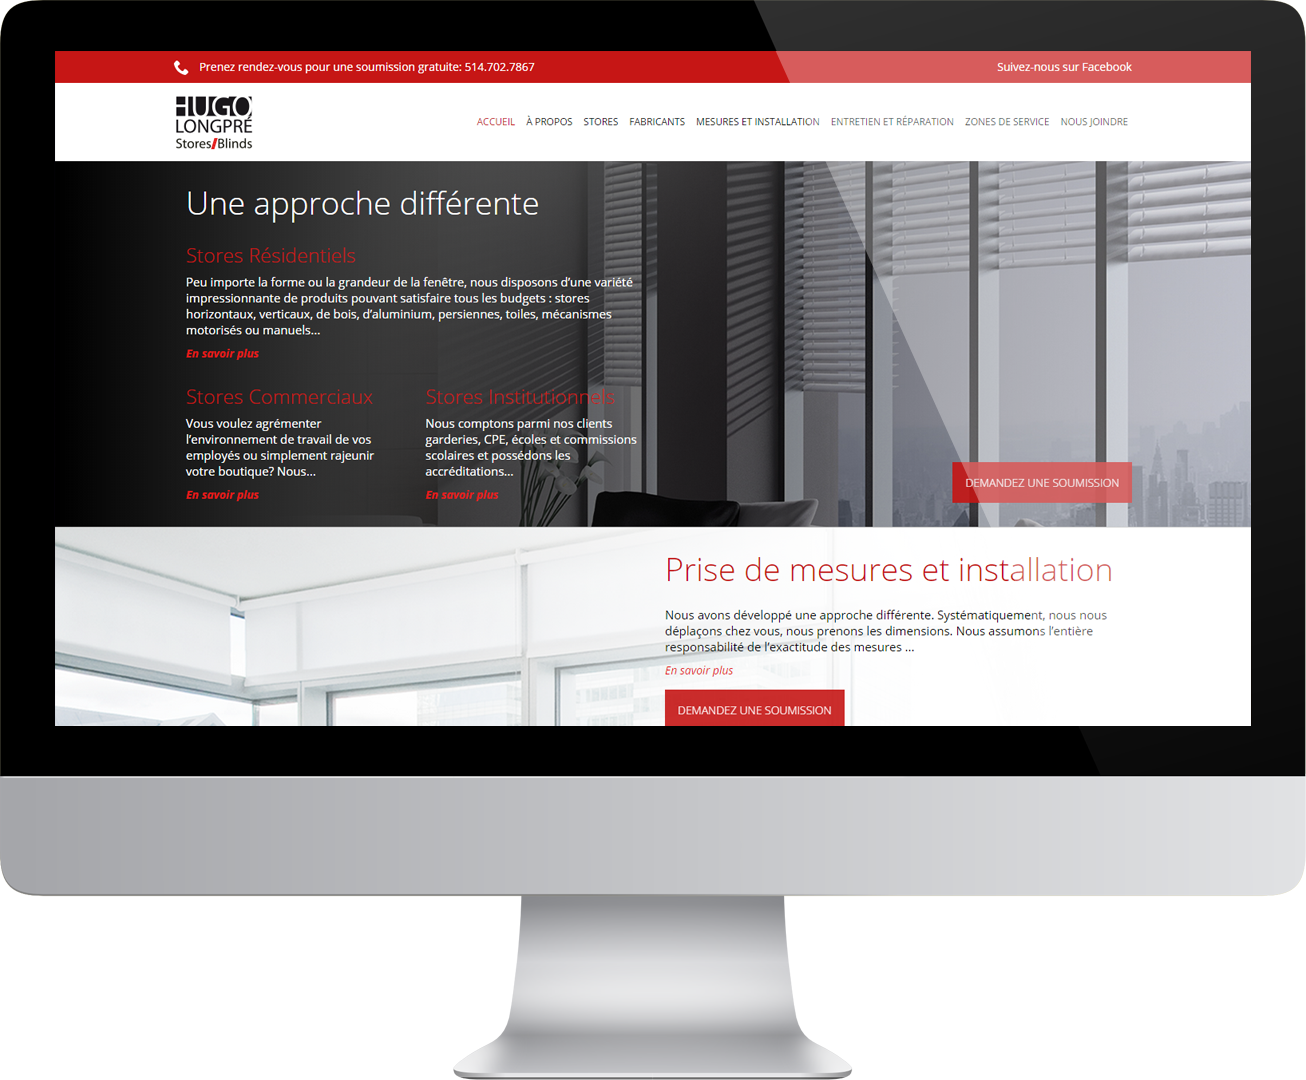 solutions-powersurfer-developpement-web-hugo-longpre